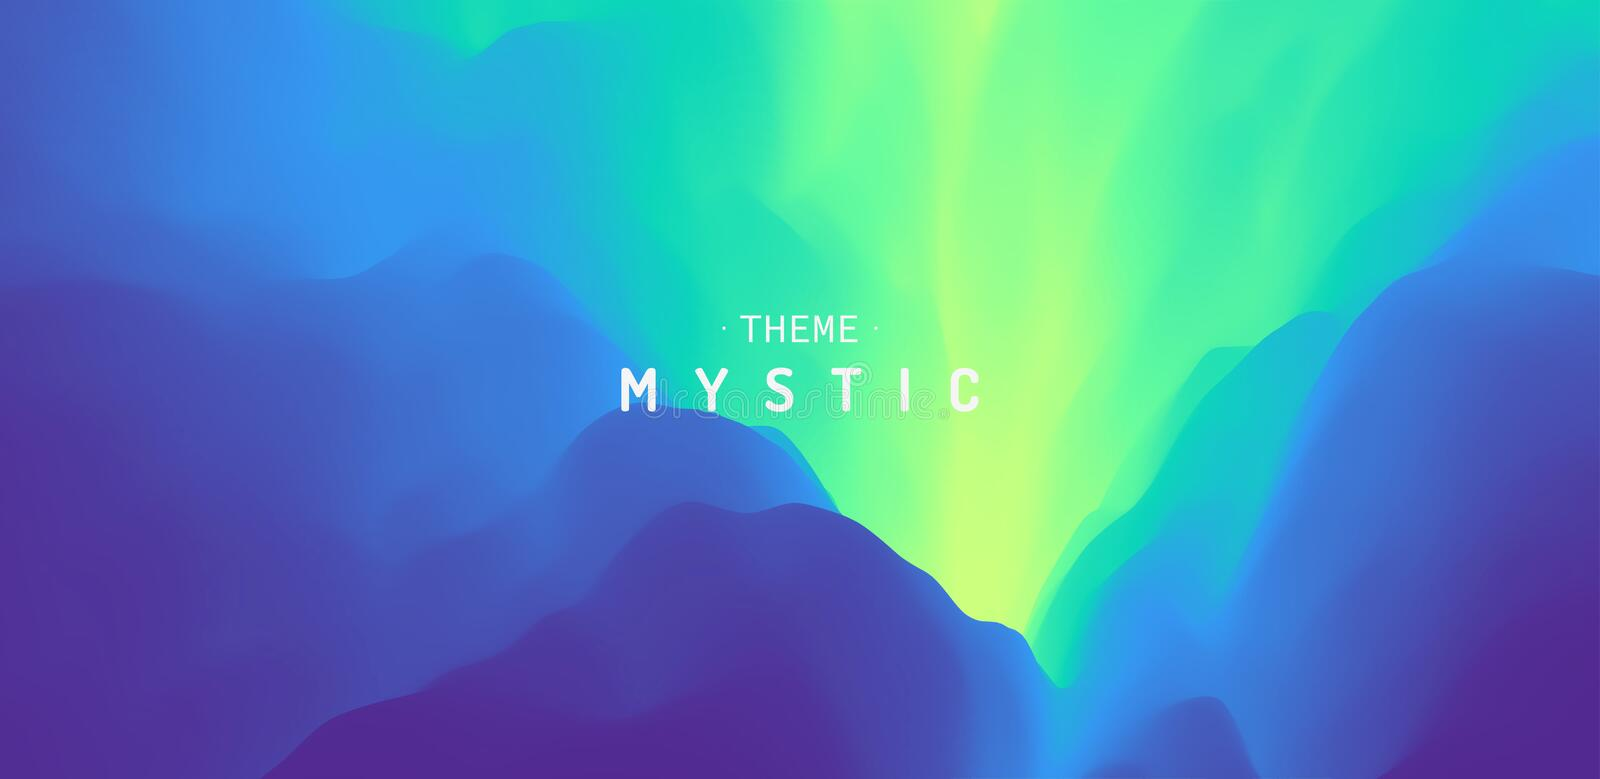 Mysterious landscape background. Mystic vector Illustration. Trendy gradients. Can be used for advertising, marketing, royalty free illustration